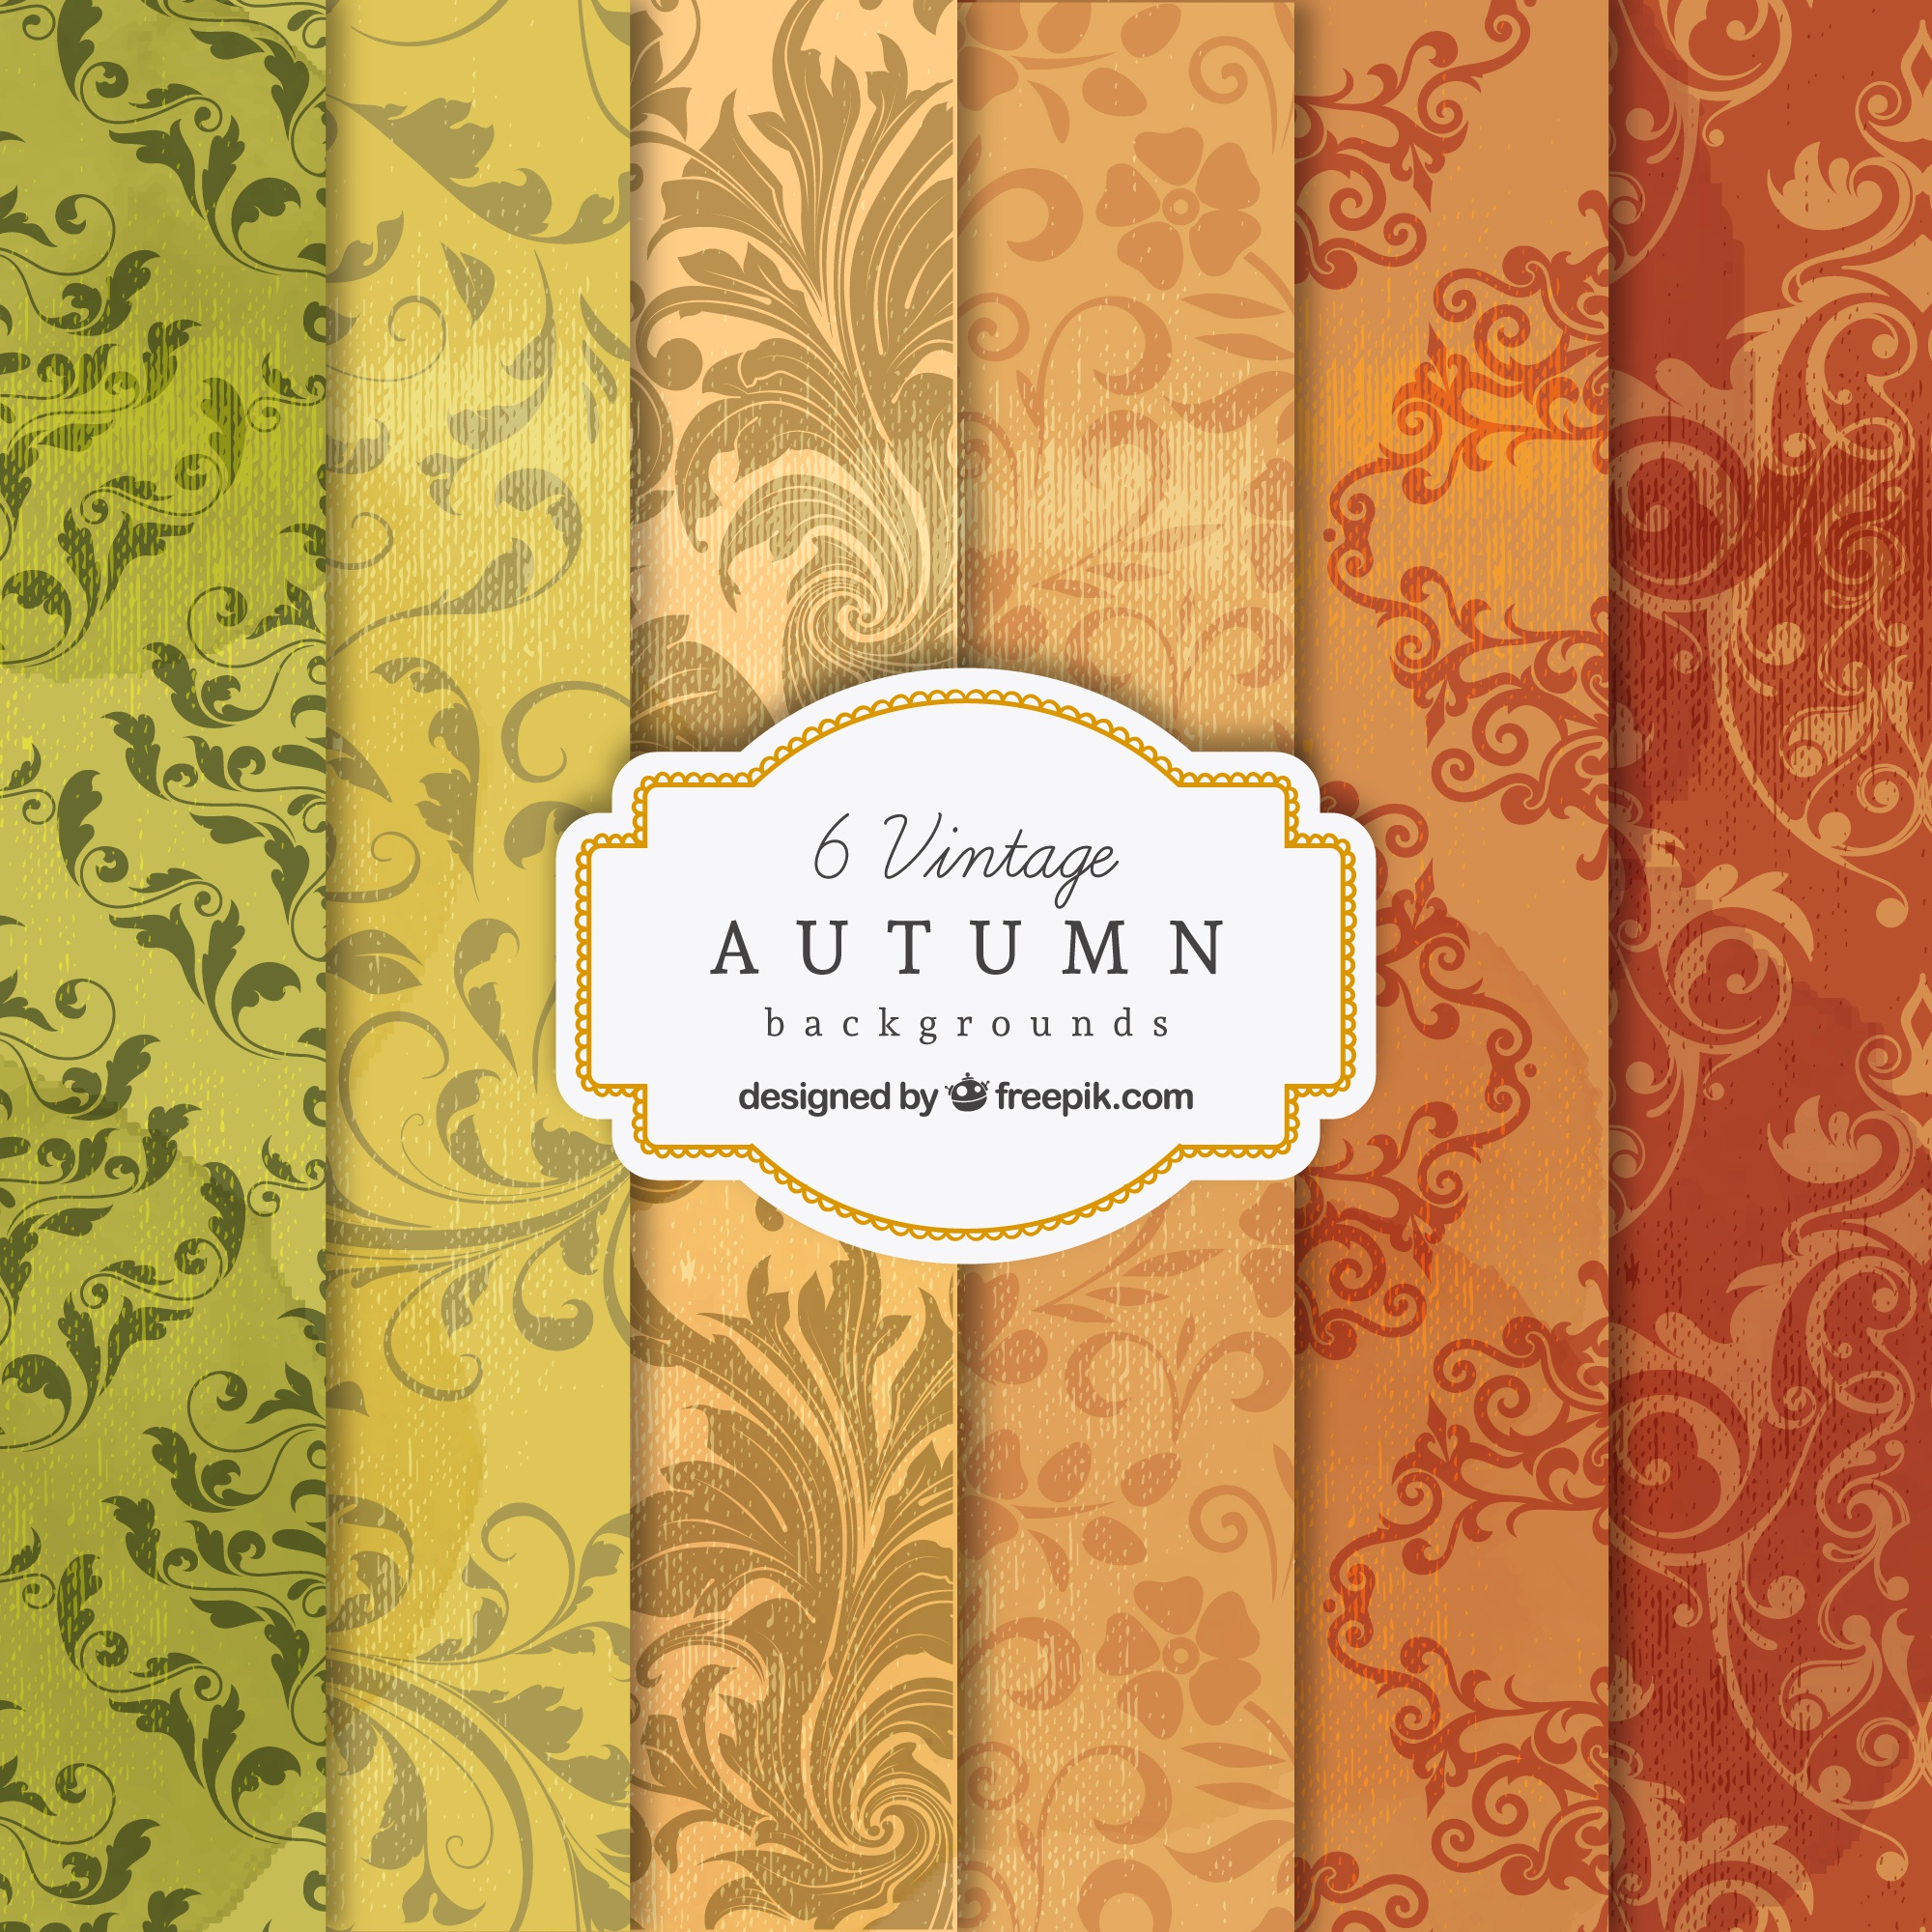 Vintage autunno backgrounds collezione